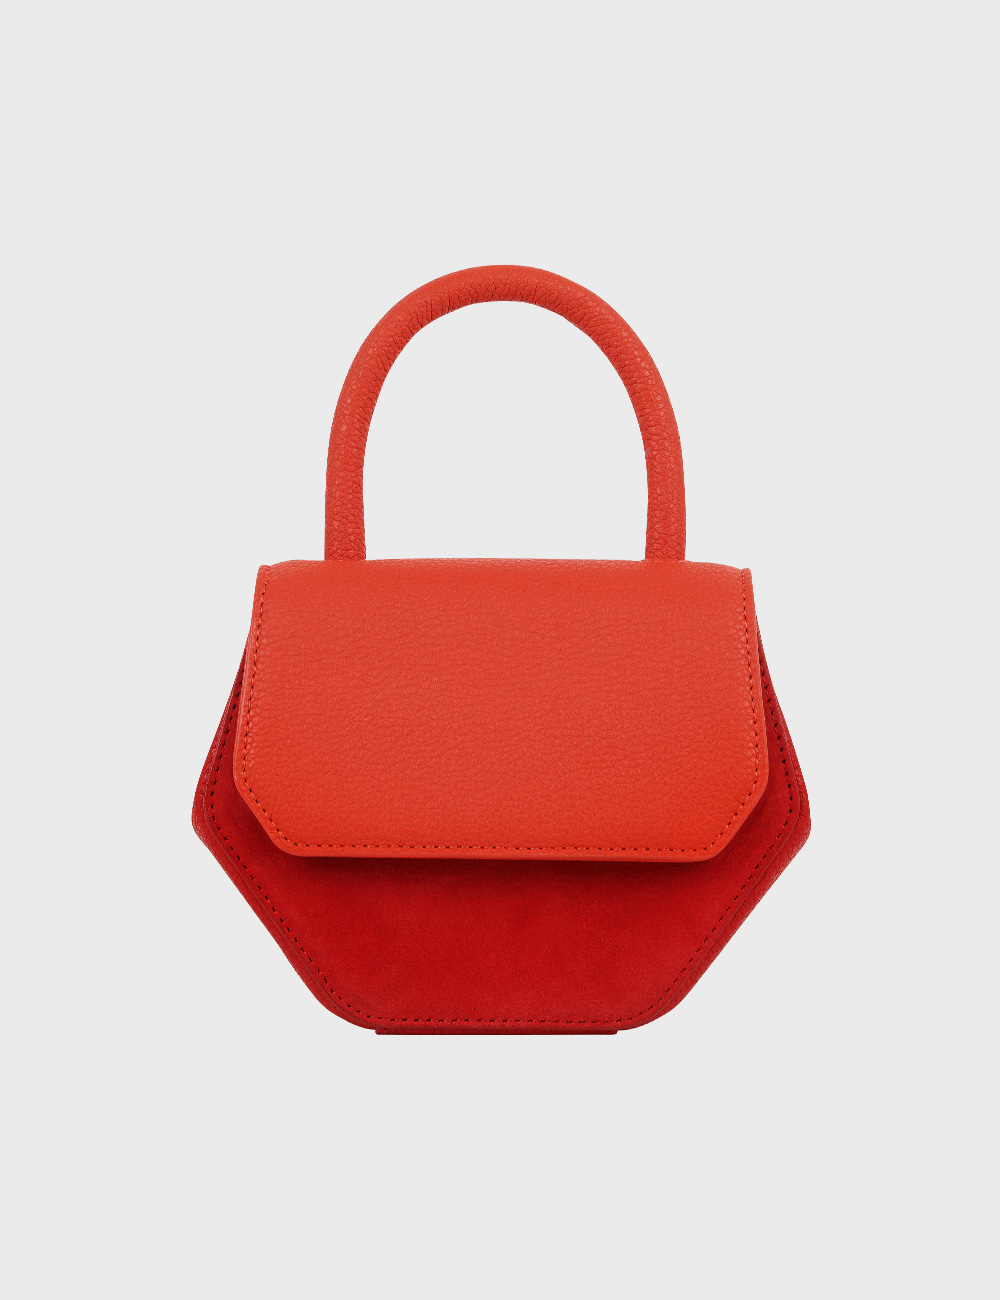 MAISON246,246 MAGOT COMBI SMALL BAG - ORANGE RED,No.246